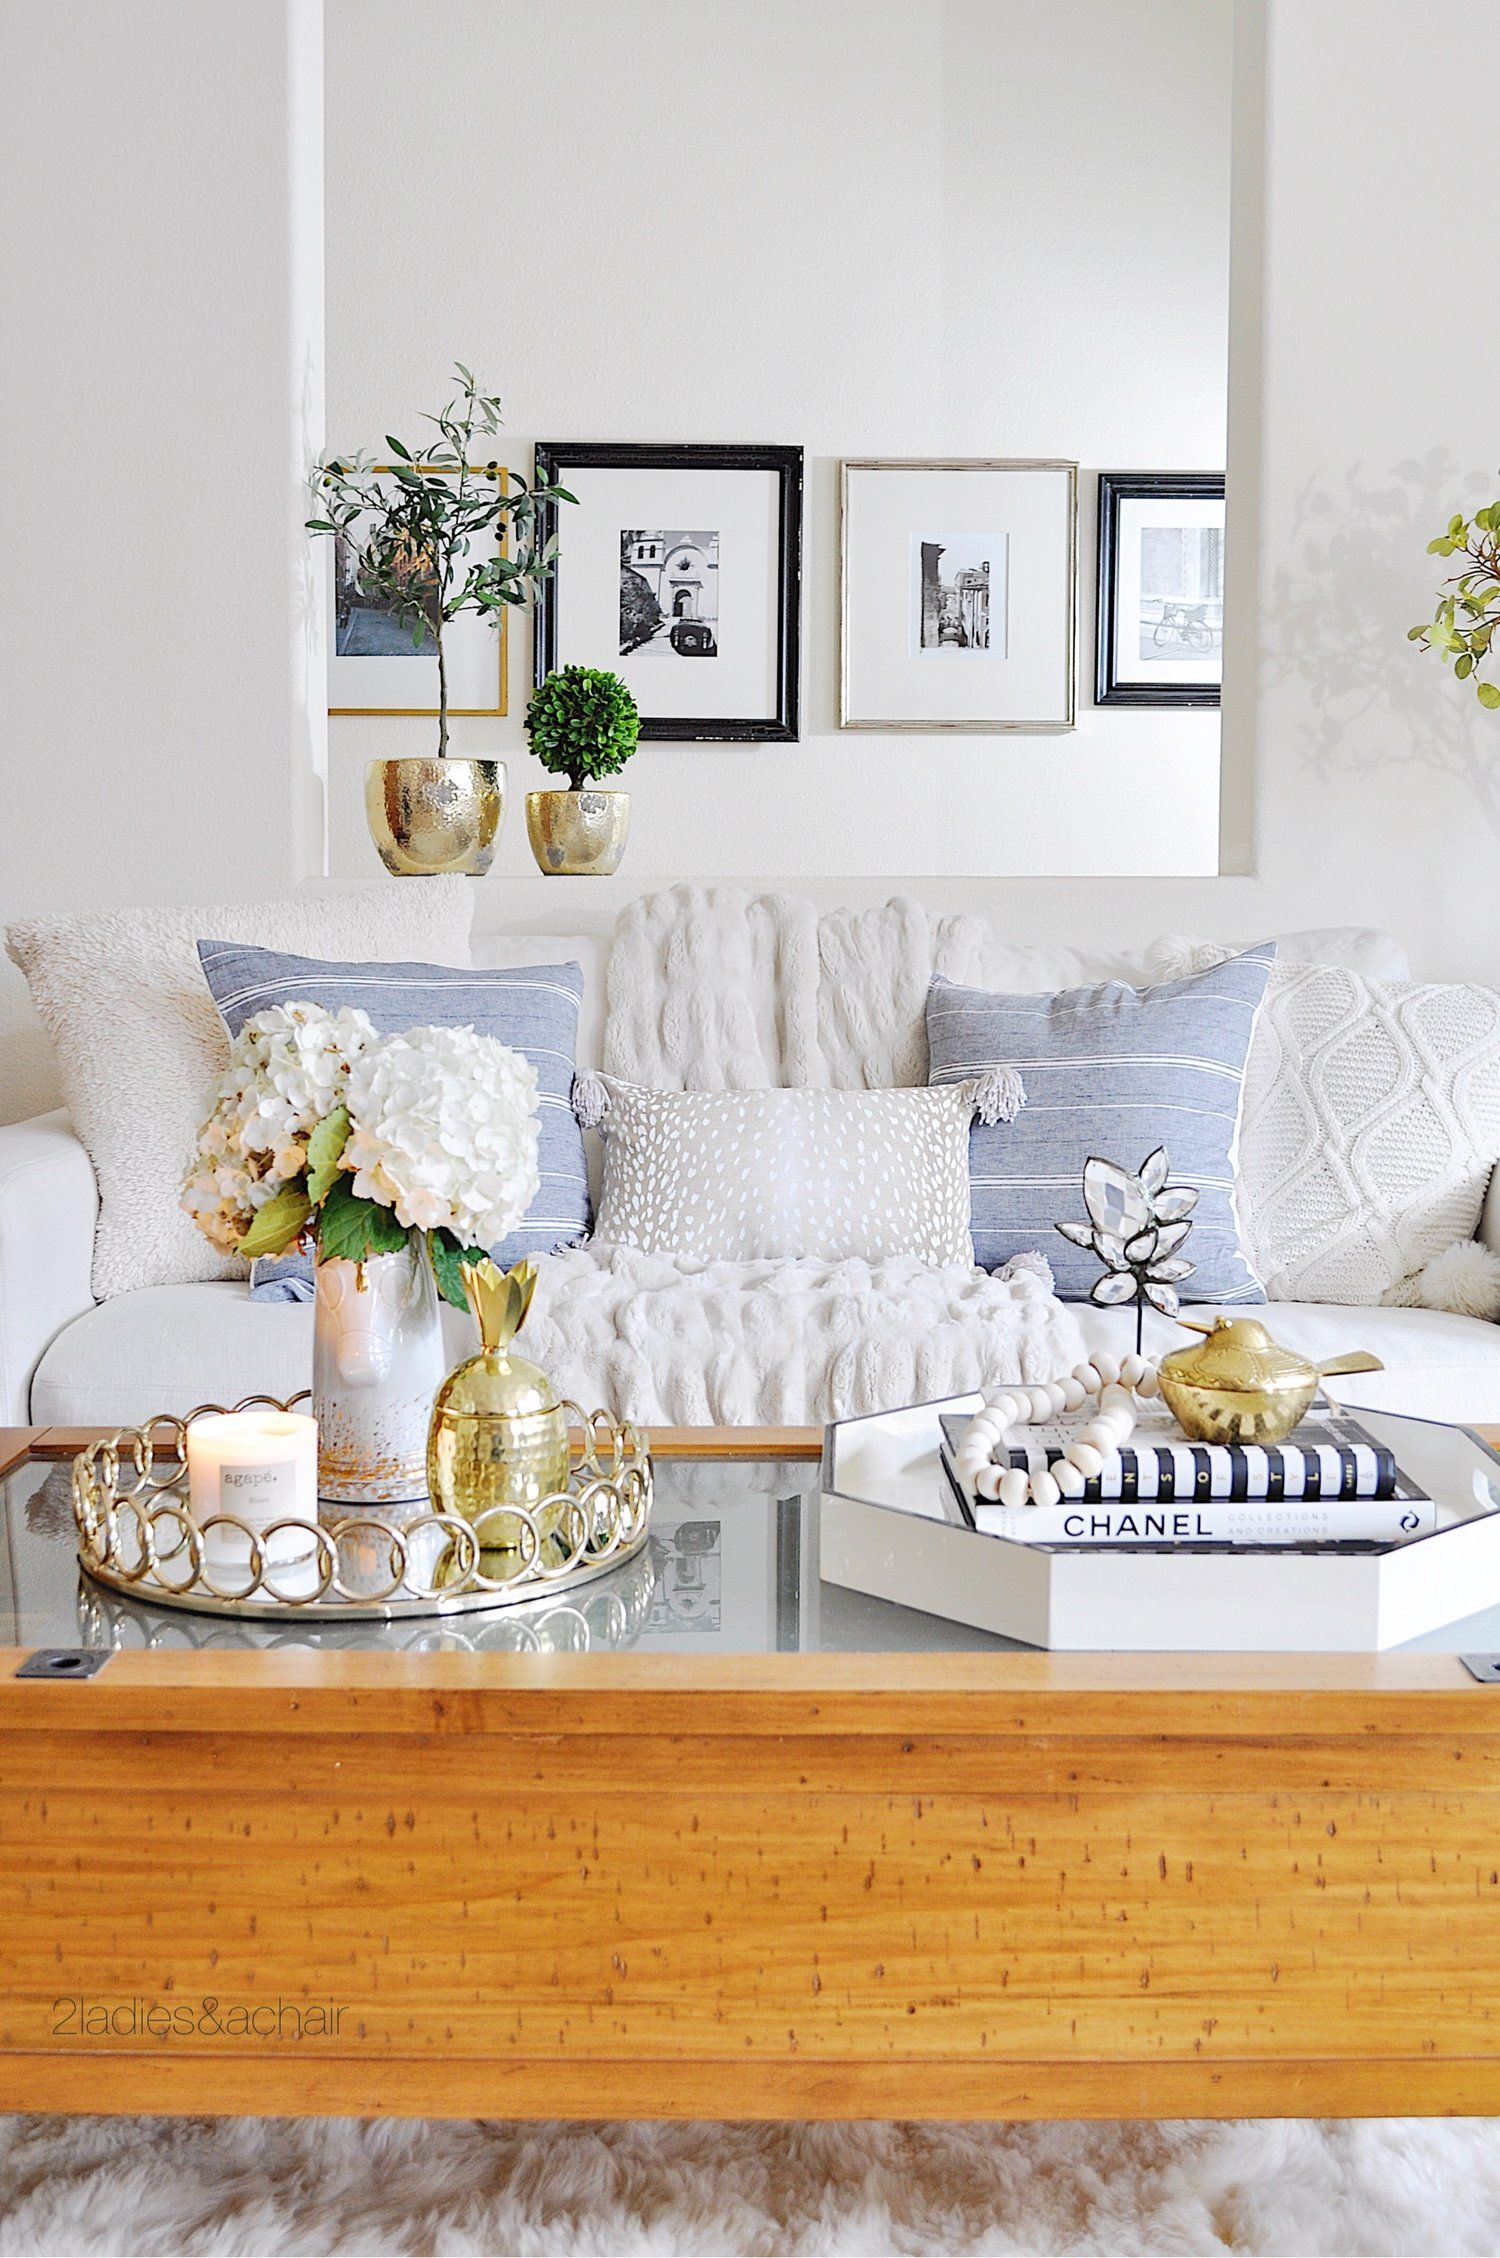 Jan 10 Winter Decor: Simplicity for the New Year | Pinterest | Happy ...